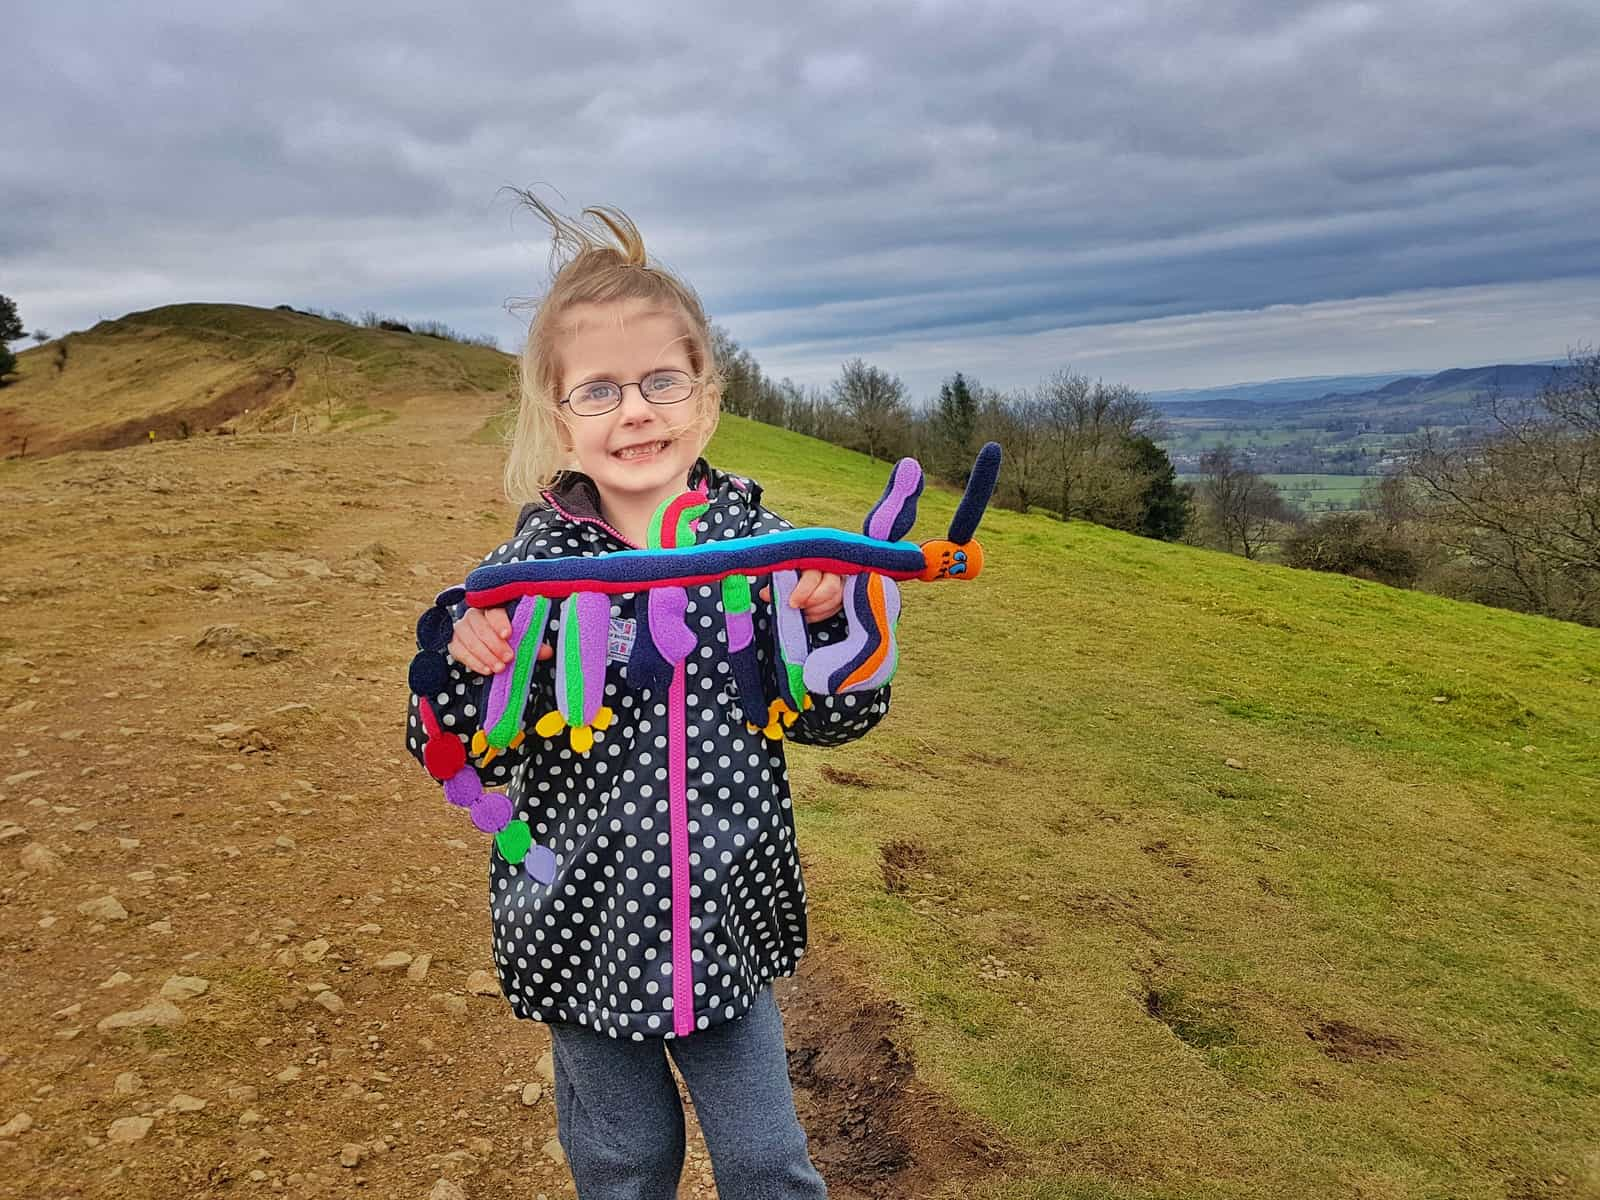 5 year old girl in black and white spotty coat on Malvern hills holding a cuddly toy long in shape with a red face and four legs with a long tail and bits sticking up. Girl is smiling.